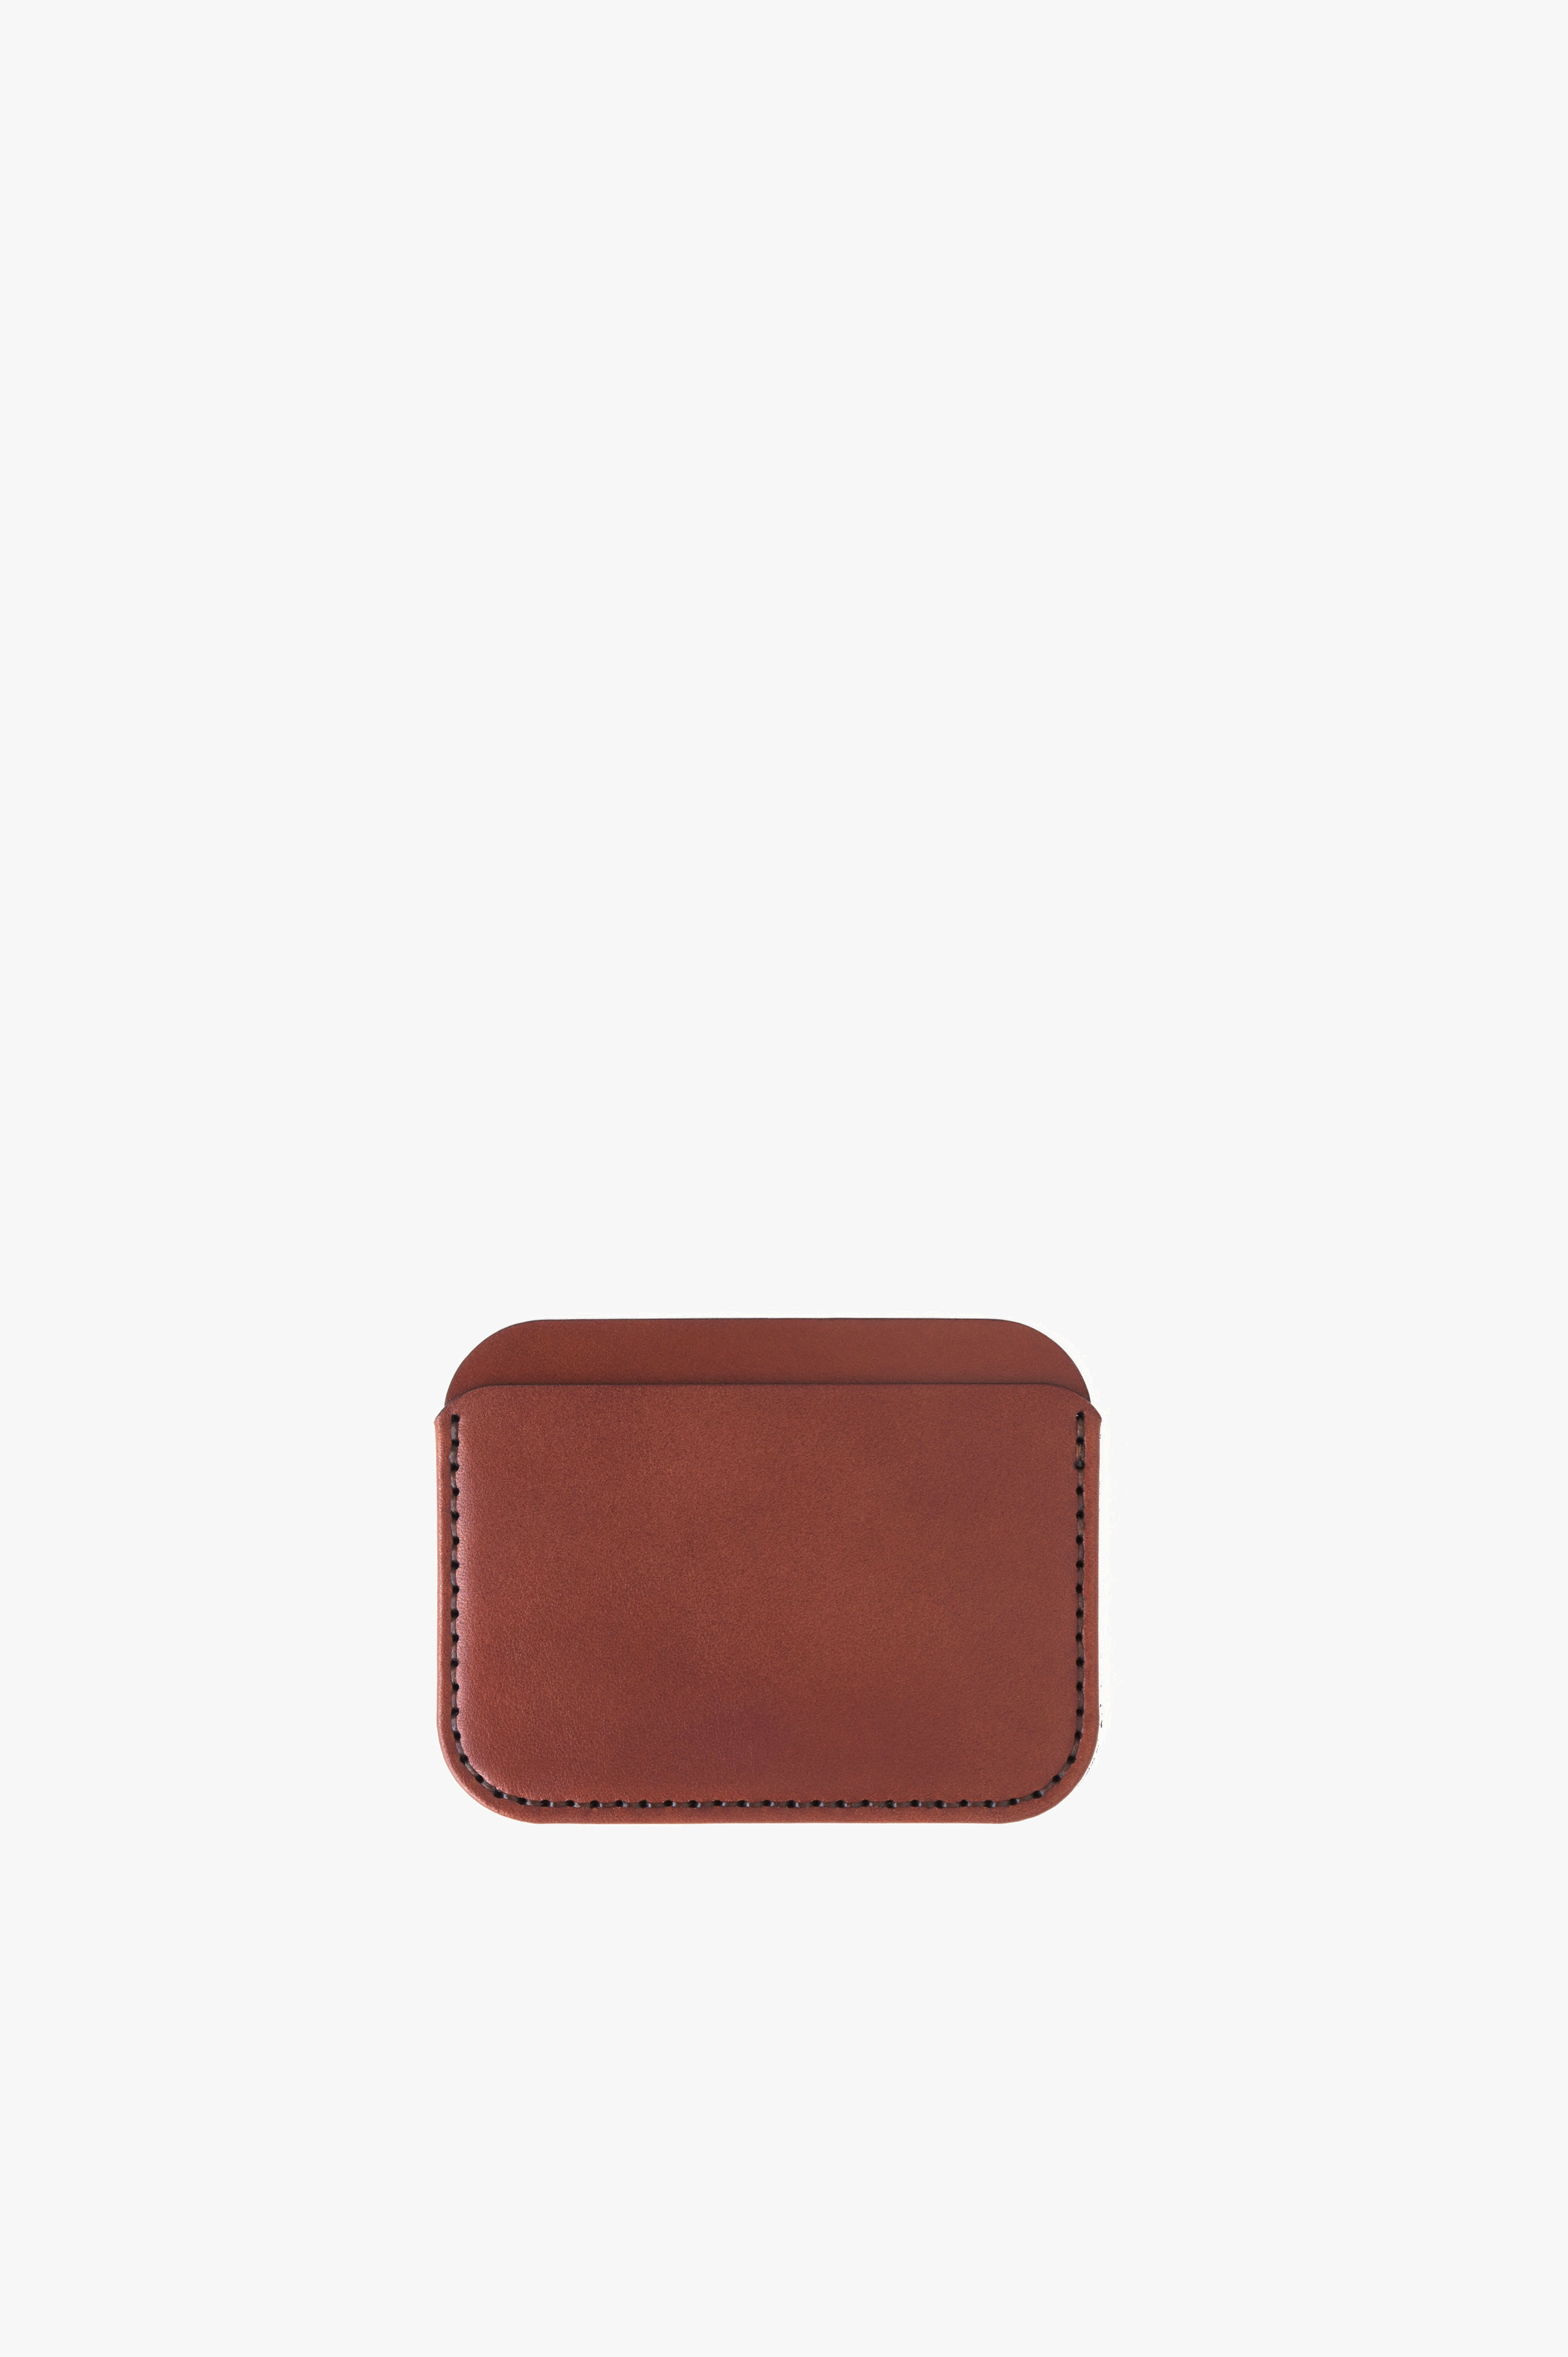 Round Luxe Wallet Madeira Wicket & Craig English Bridle Leather